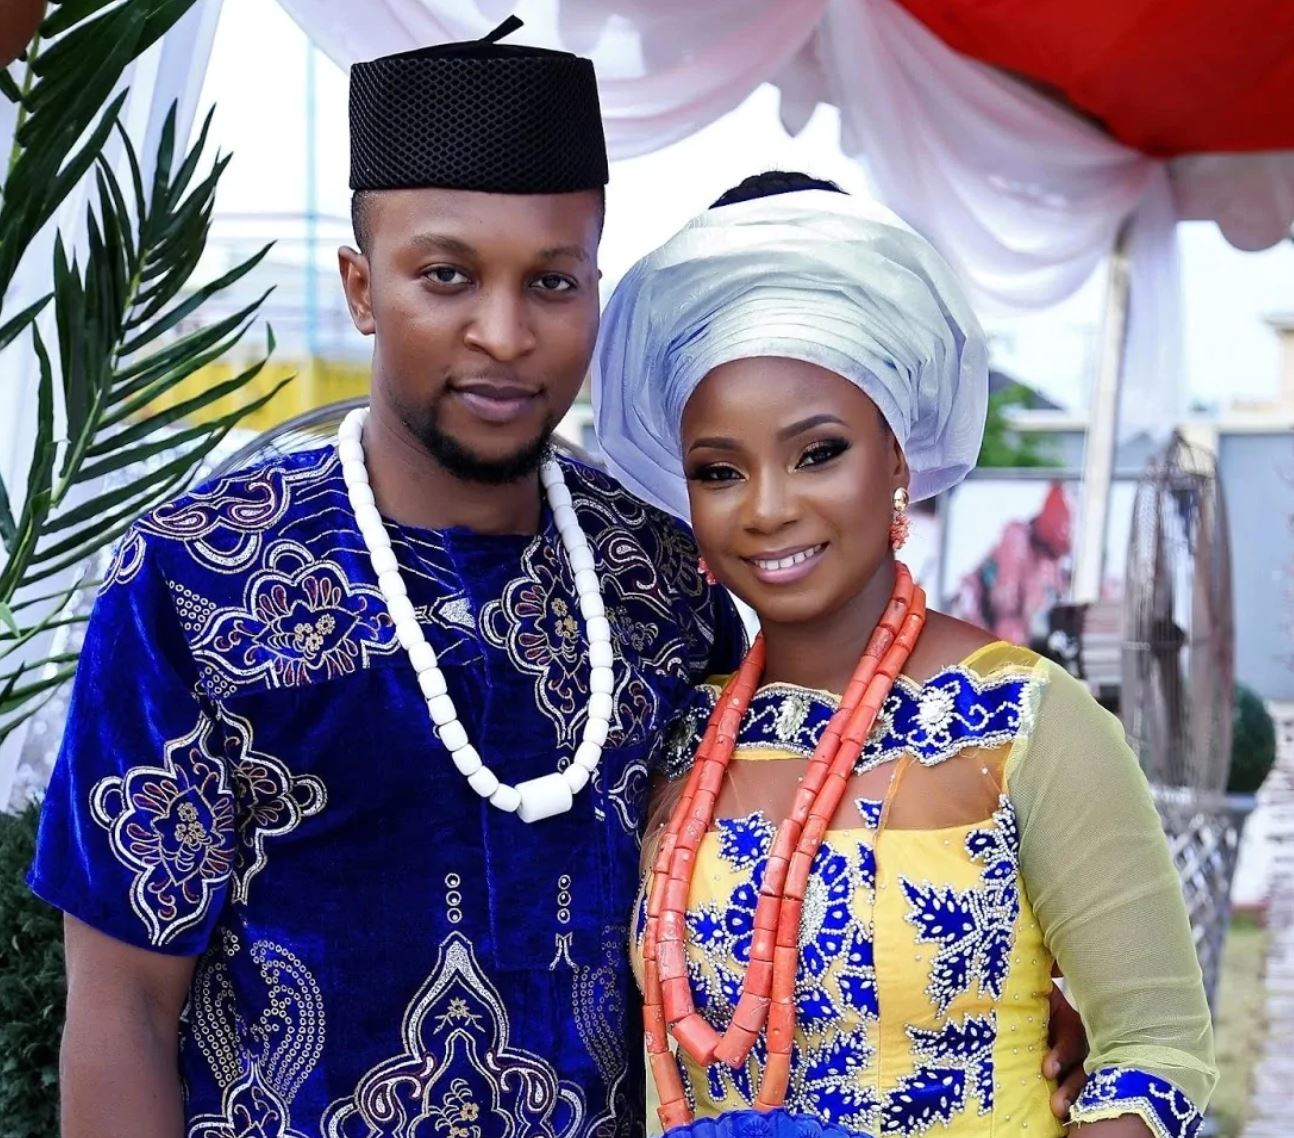 Genevieve Nnaji's daughter, Chimebuka and her husband husband Prince Osi Chigozie Ikediwa.